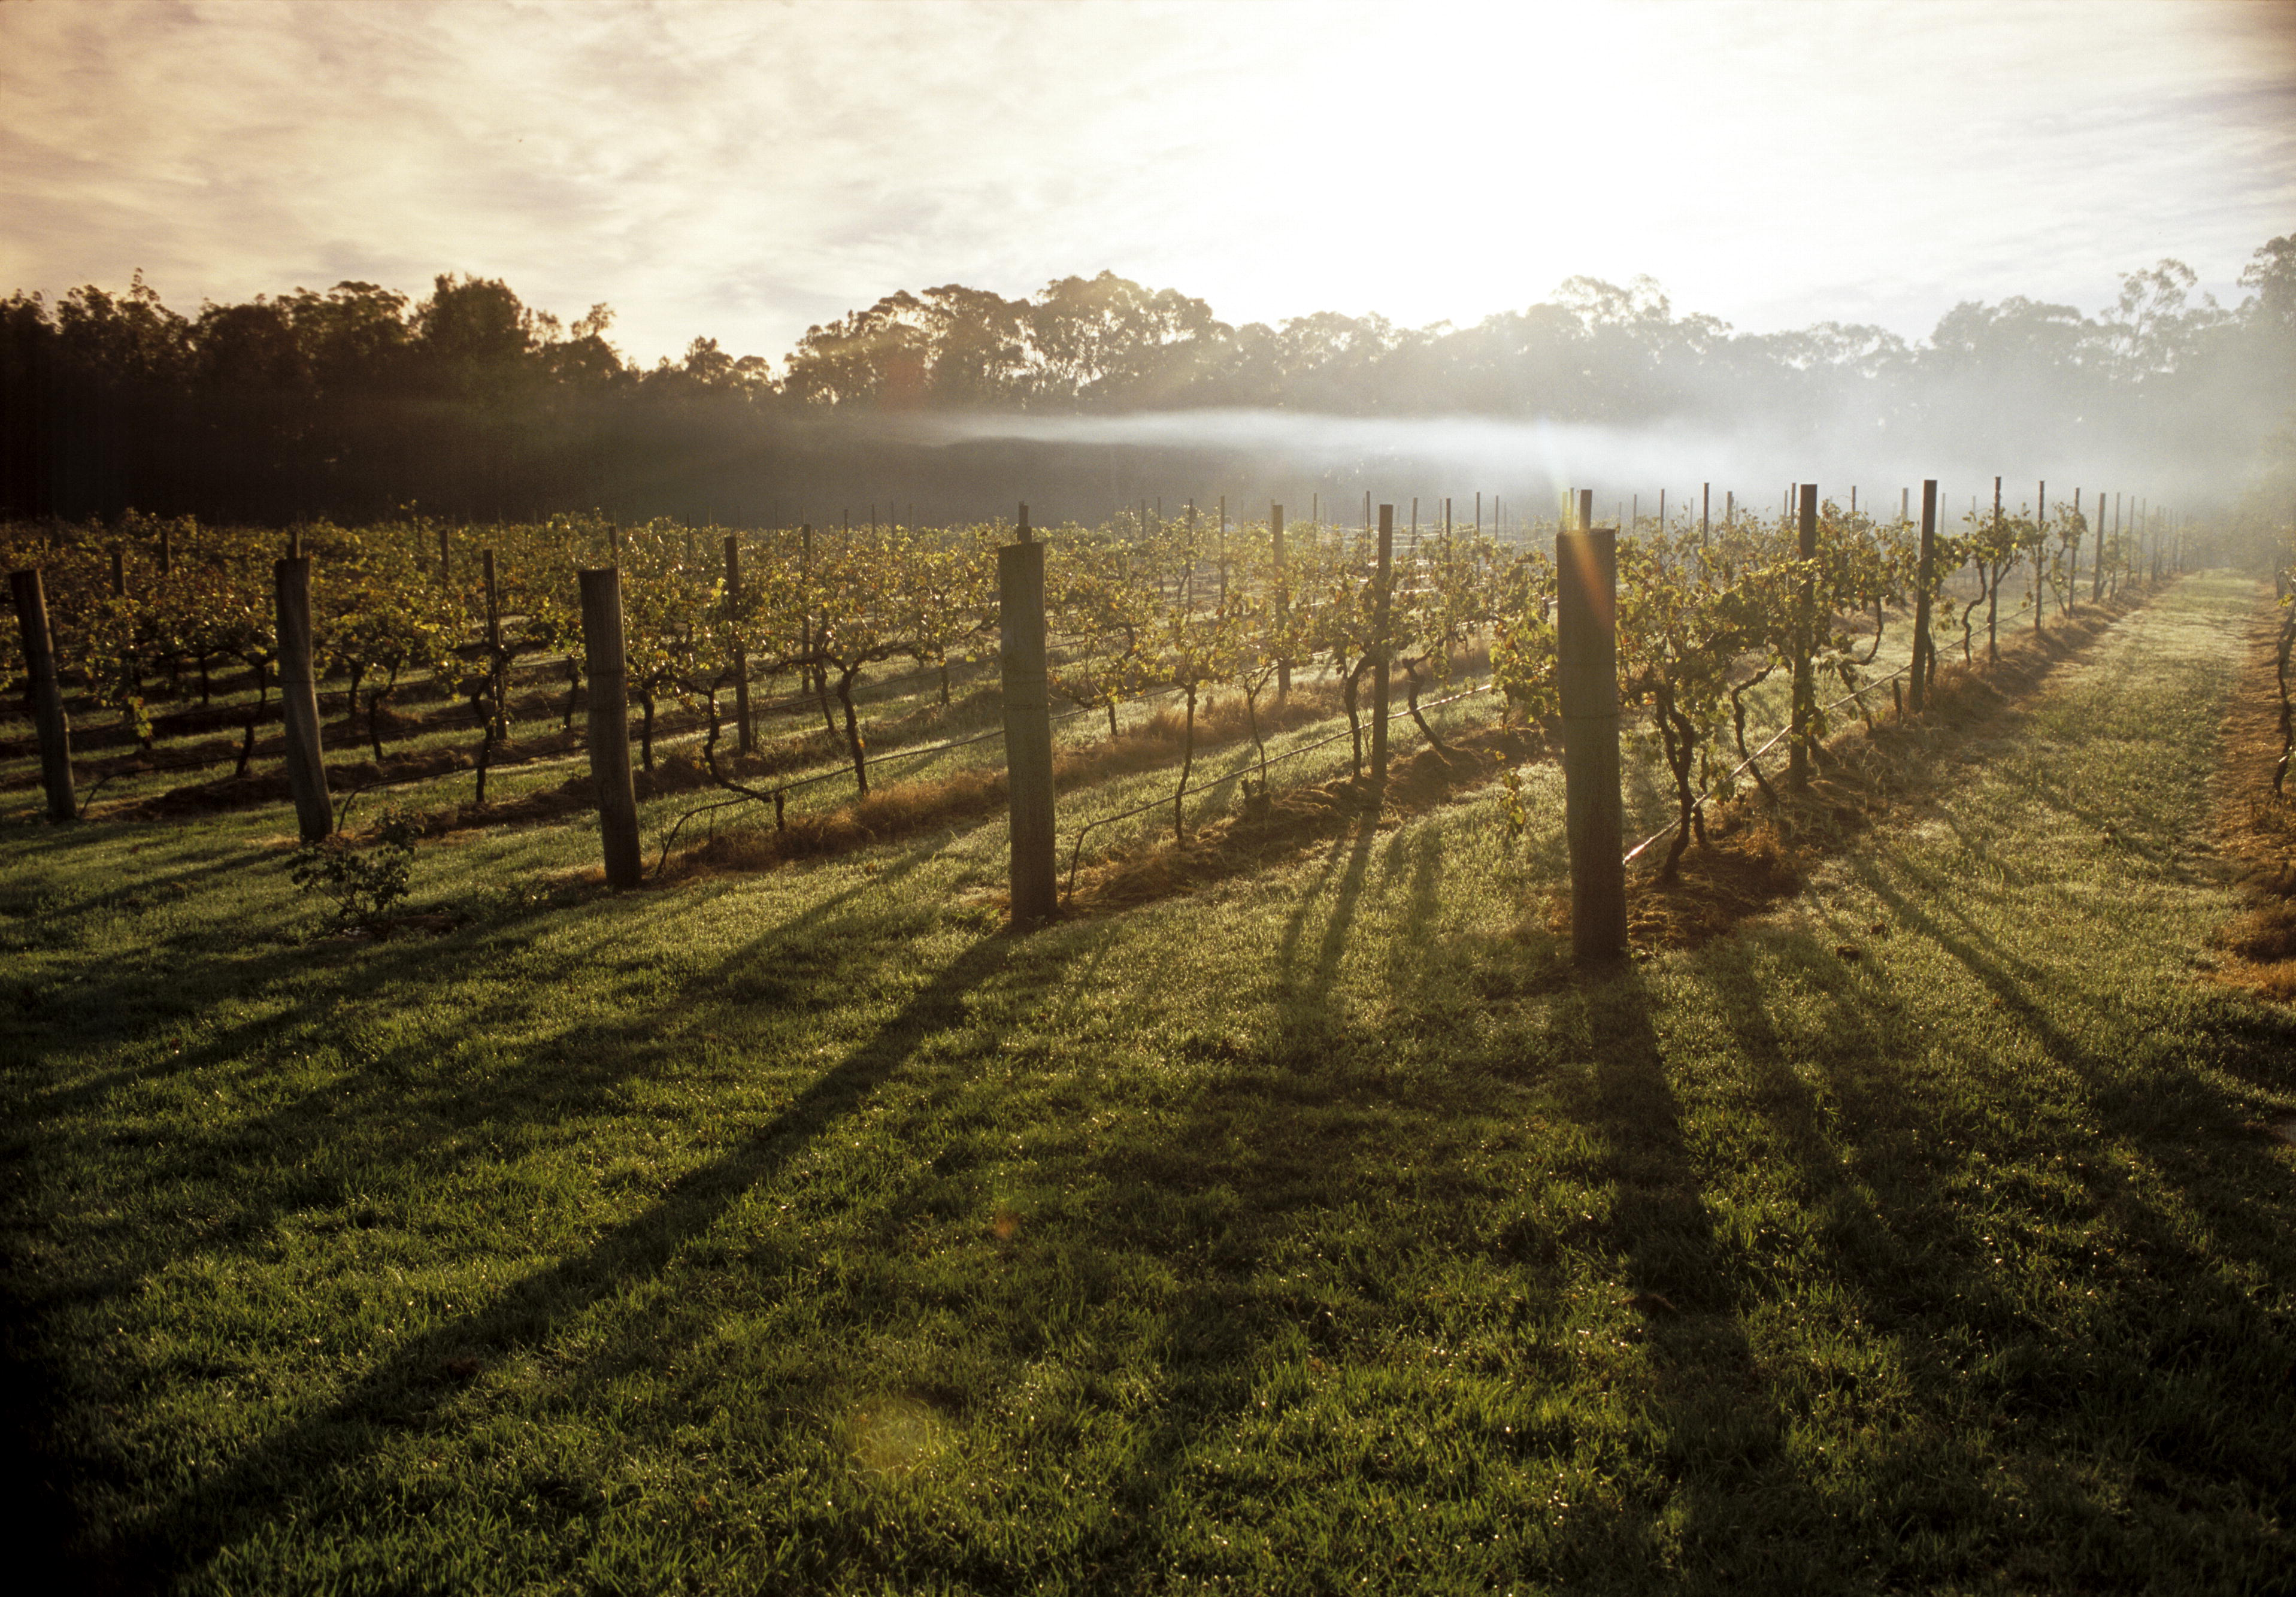 Misty Morning Vineyard - Unknown Location